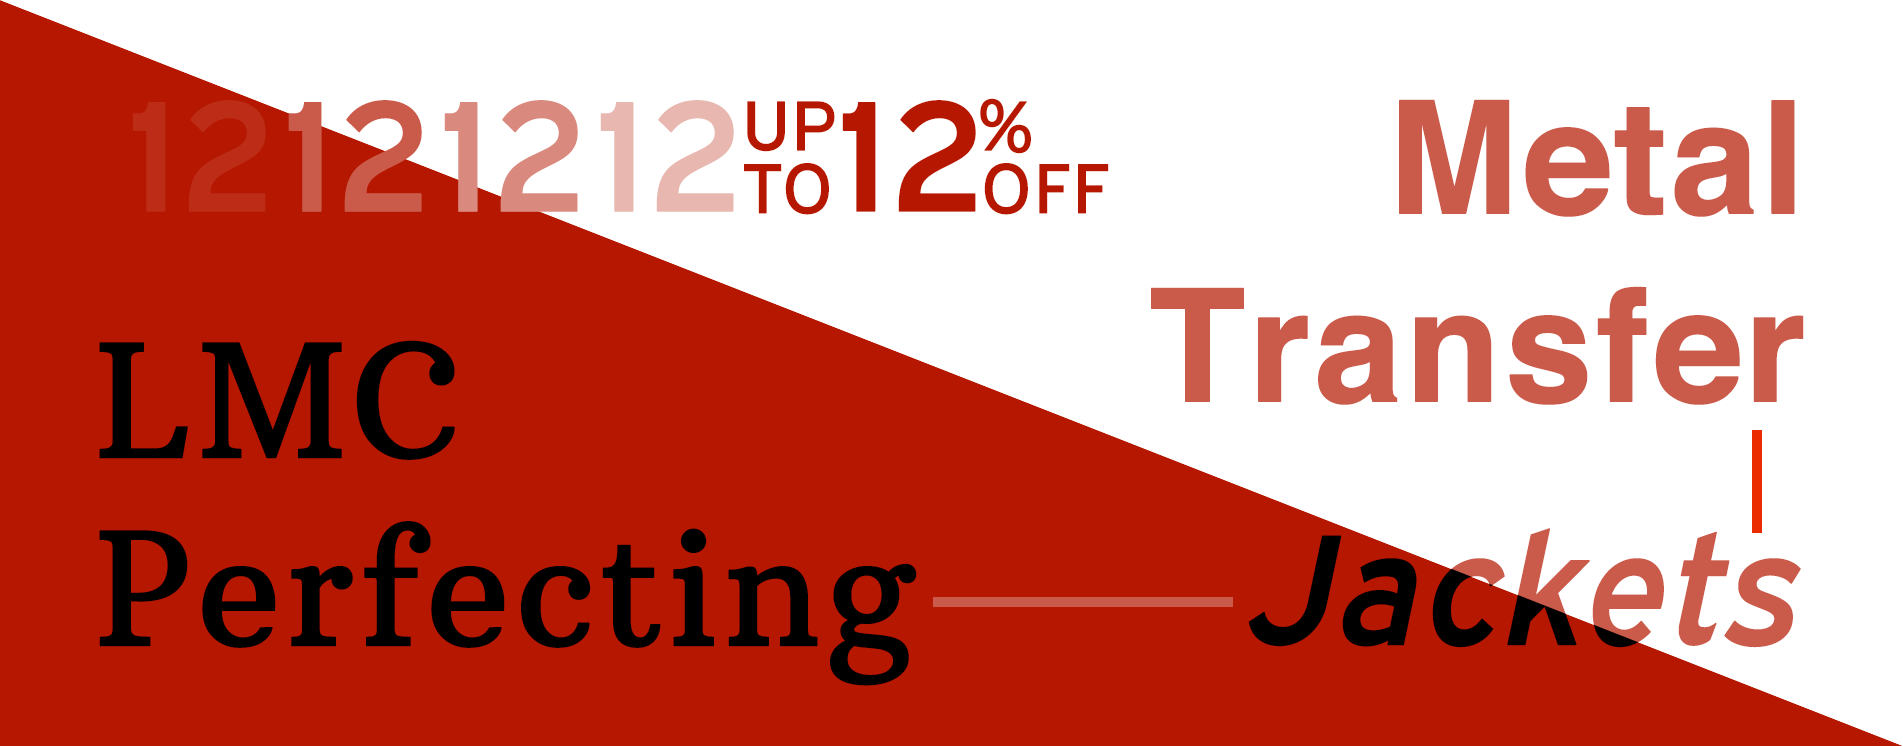 Up To 12% OFF LMC Perfecting & Metal Transfer Jackets